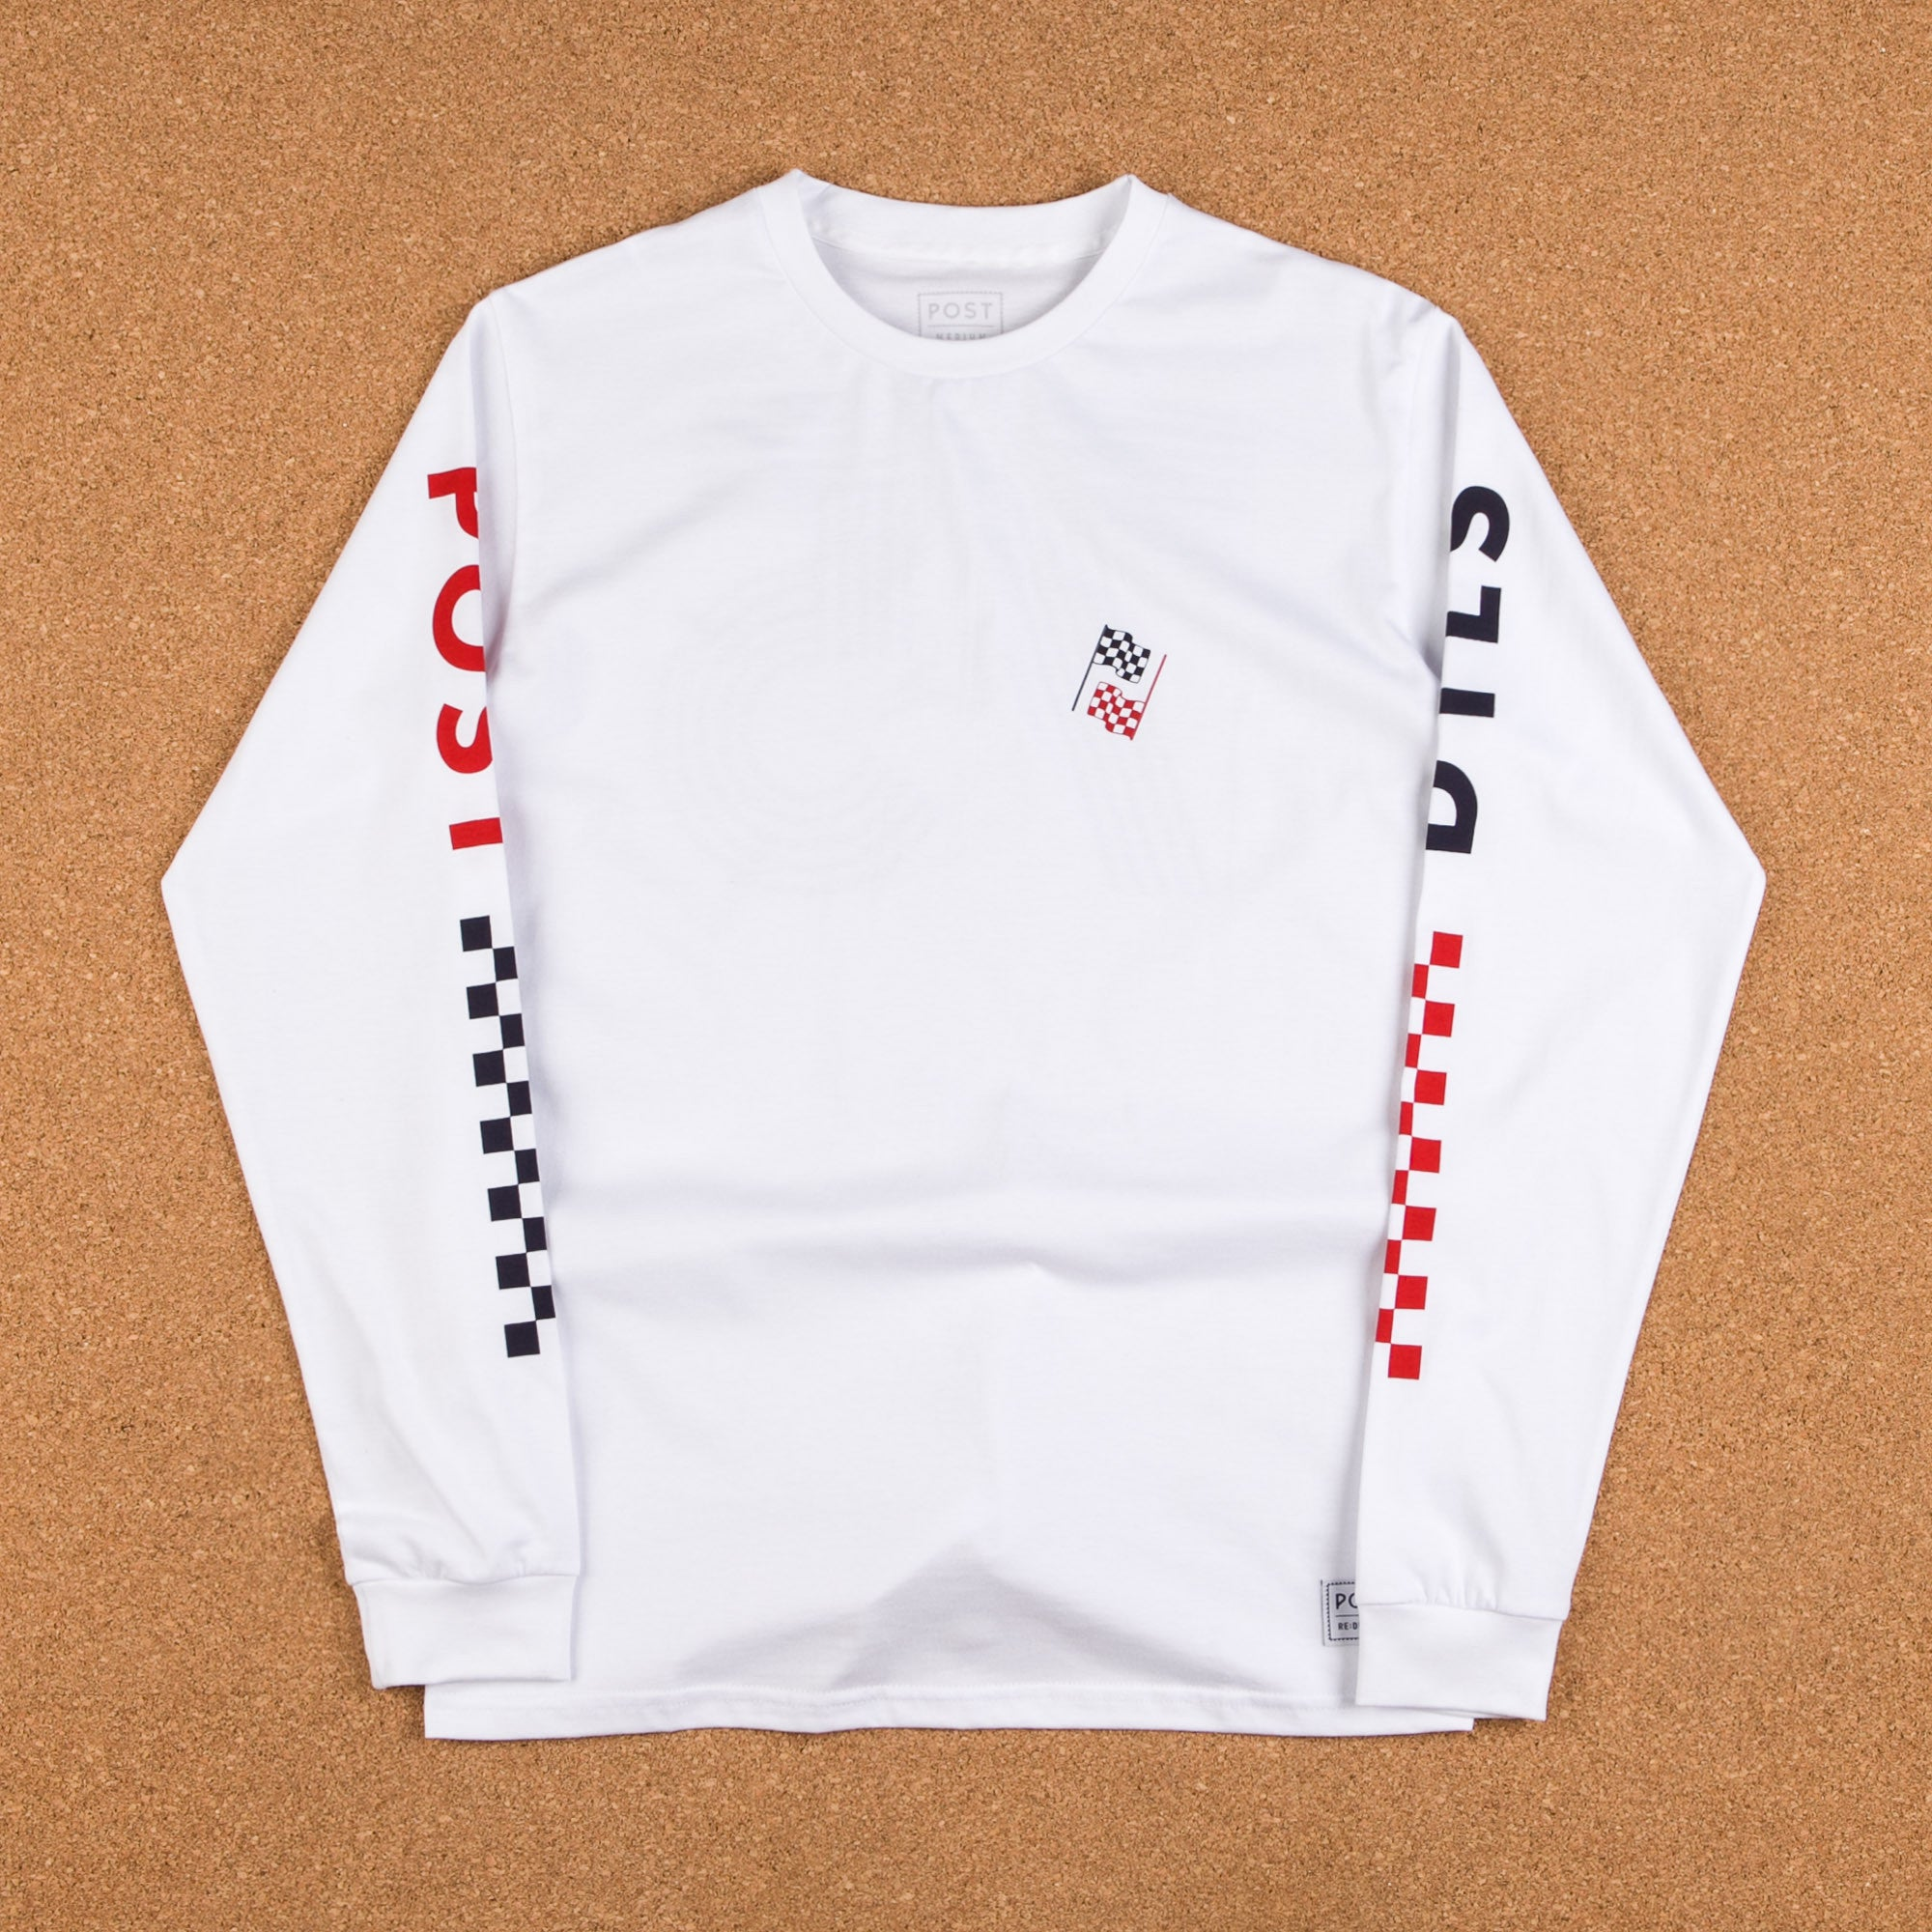 Post Details Decades Class Of '75 Long Sleeve T-Shirt - White